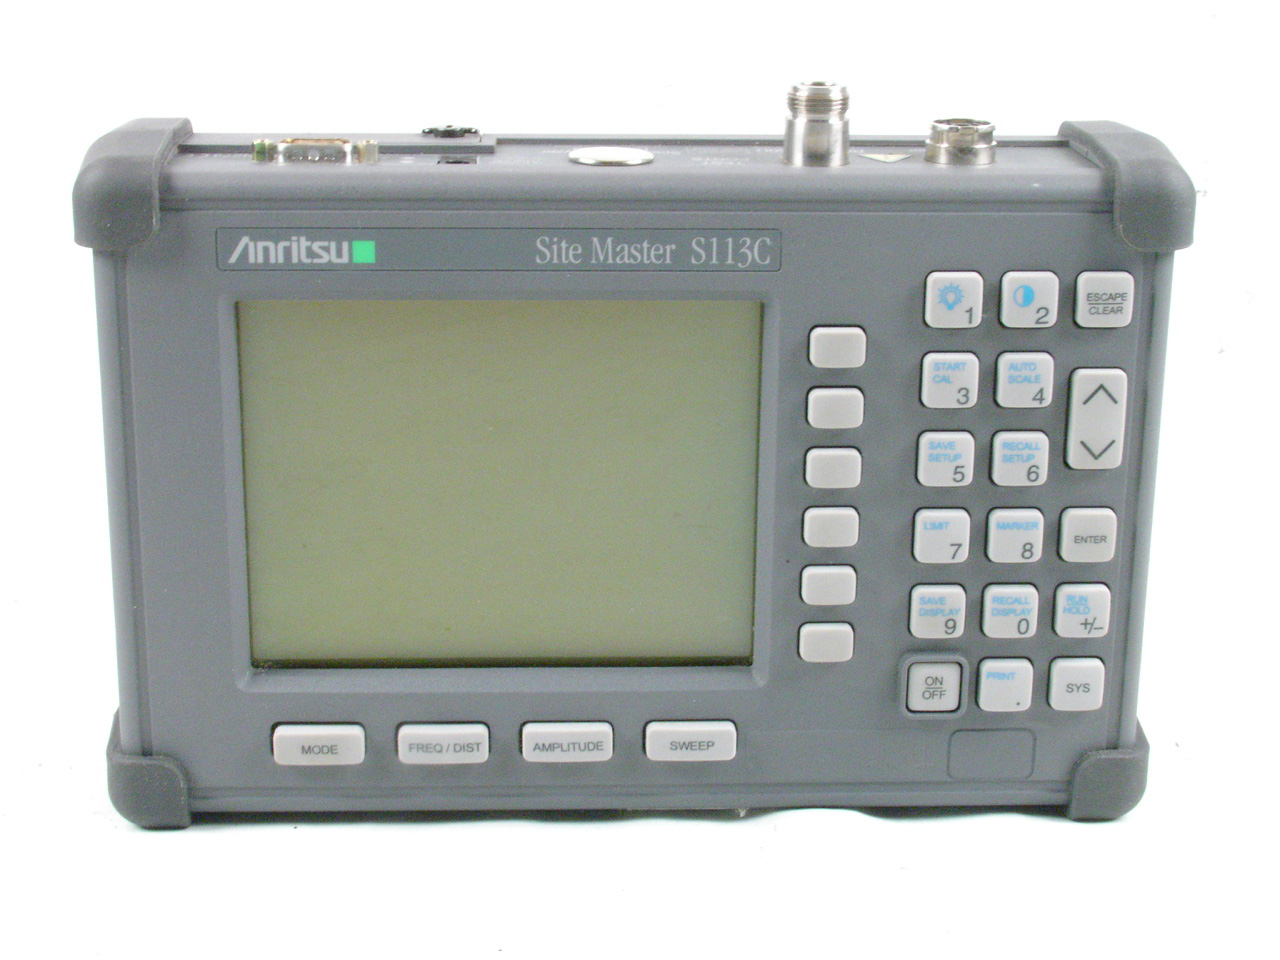 Anritsu S114C for sale